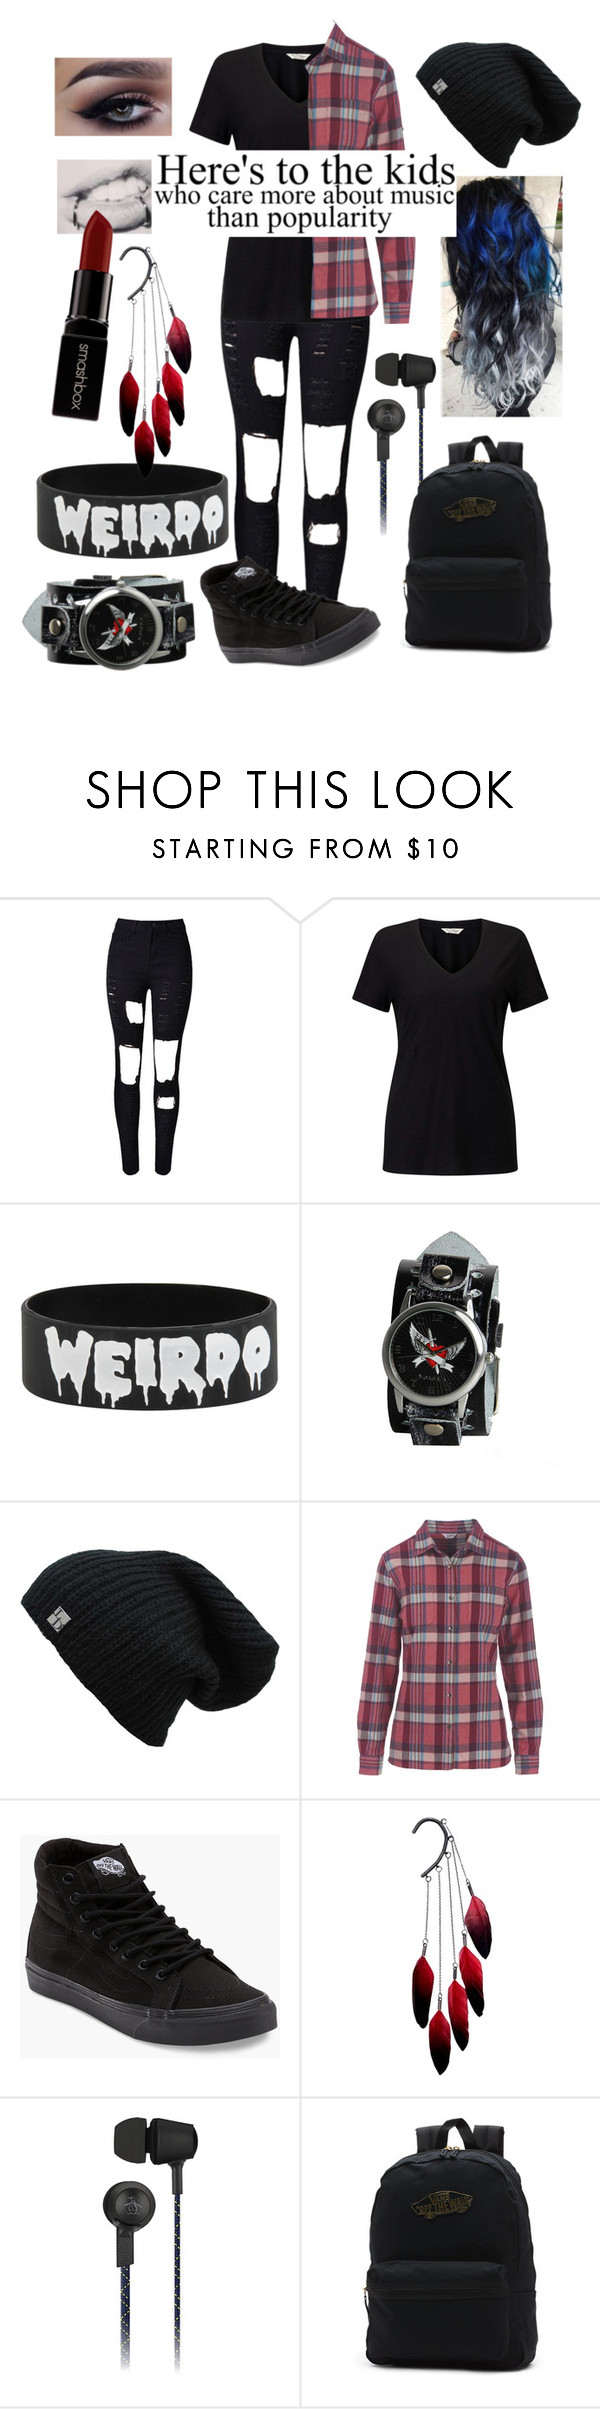 """""""Concert Wear"""" by choice-to-be ❤ liked on Polyvore featuring Miss Selfridge, Nemesis, Woolrich, Vans, Anni Jürgenson, Original Penguin and Smashbox"""